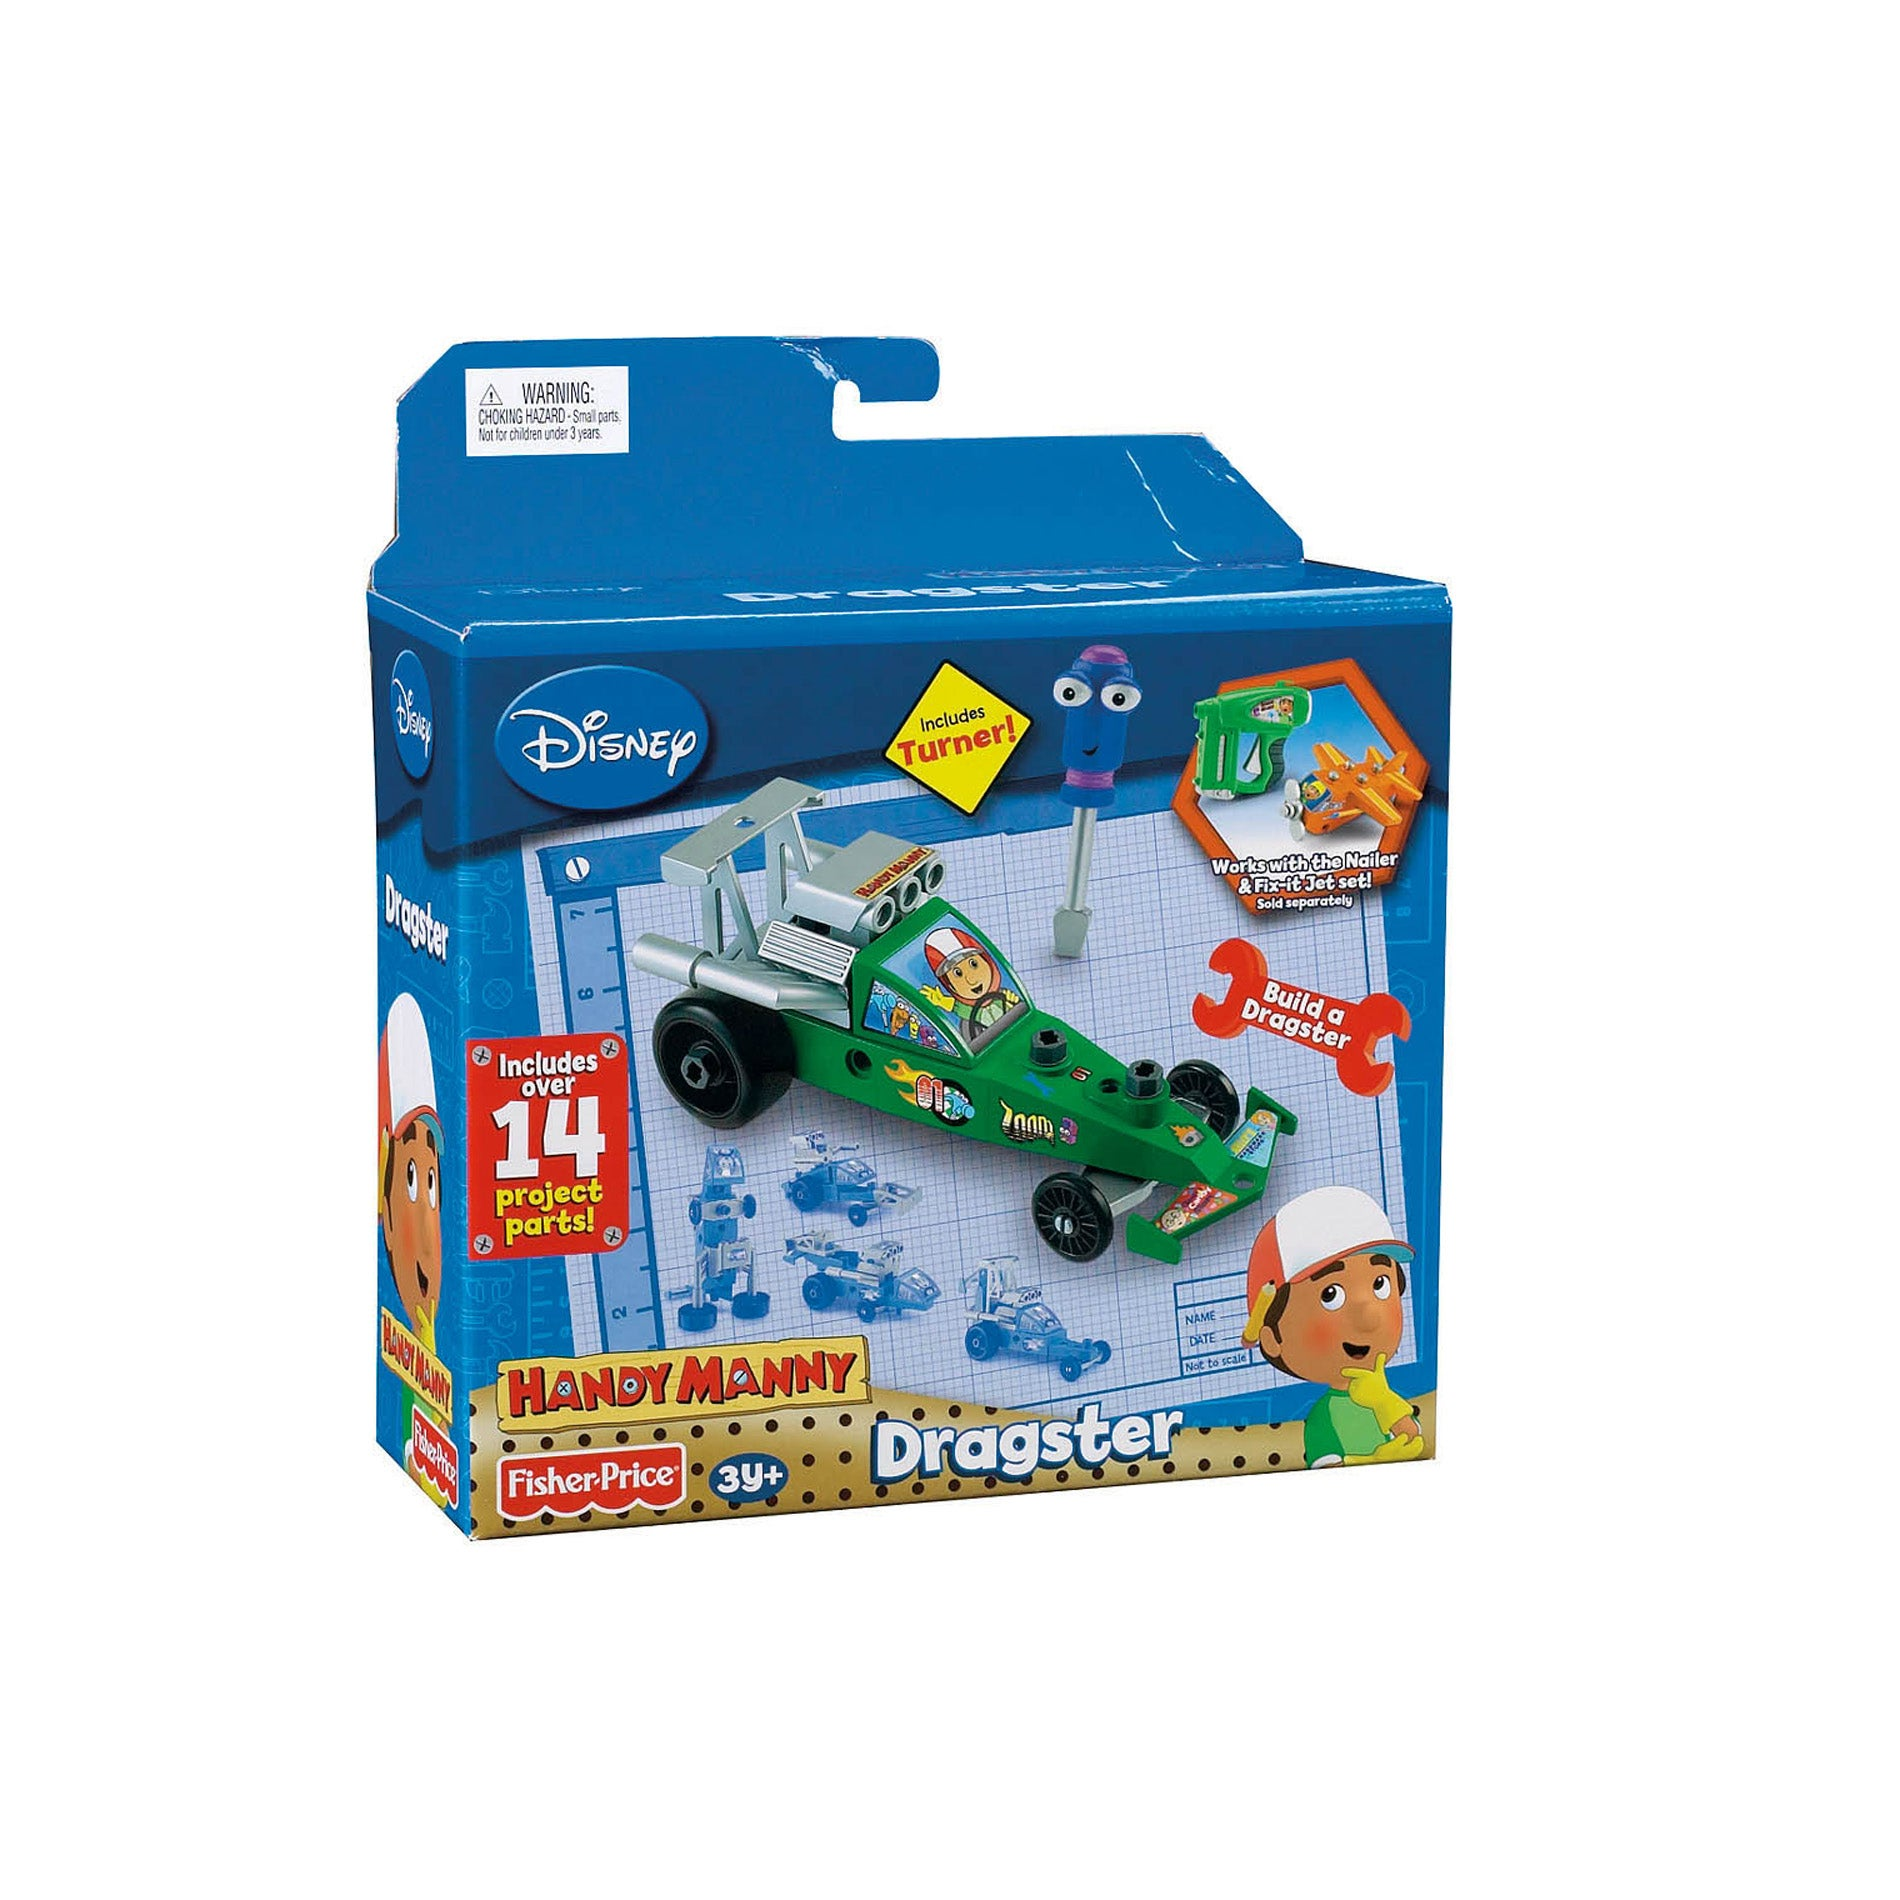 Fisher Price Manny the Dragster Play Set